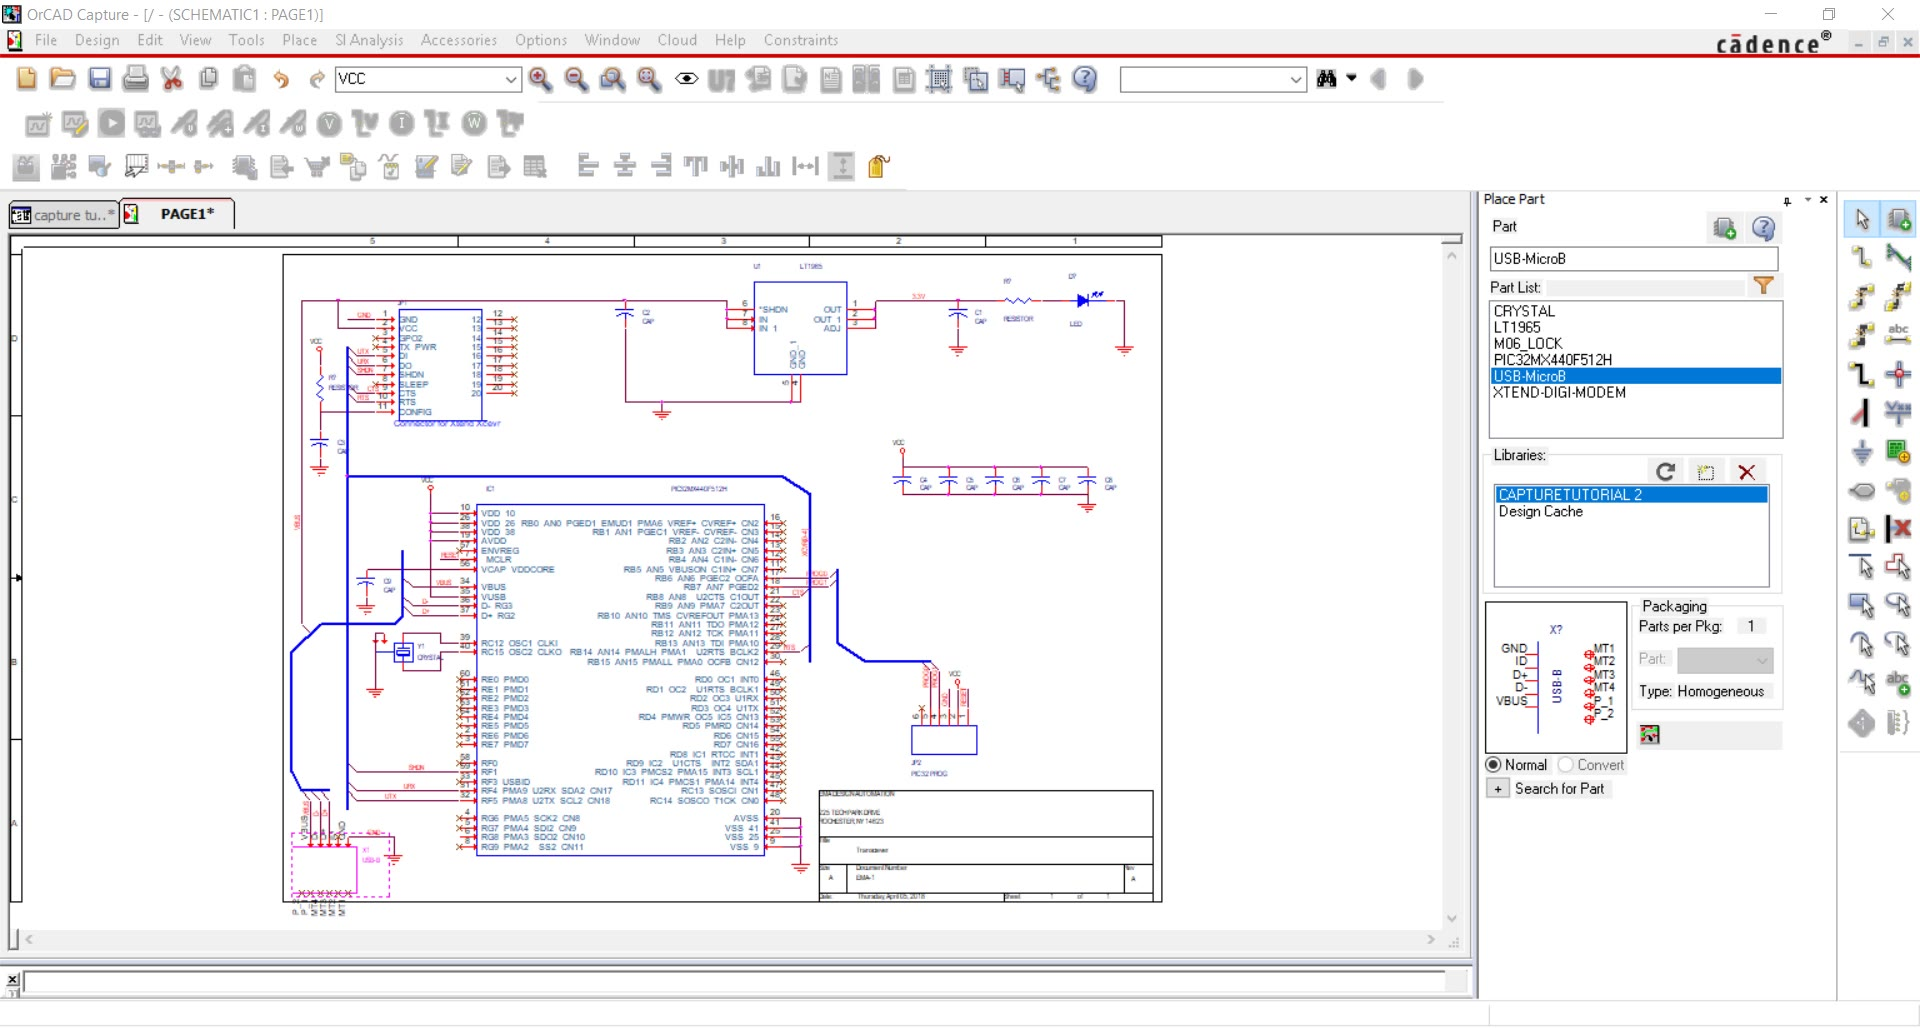 Start Your First Schematic Design In Orcad Capture Click Here For A Pdf Version Of Theschematic 6 Define Differential Pairs